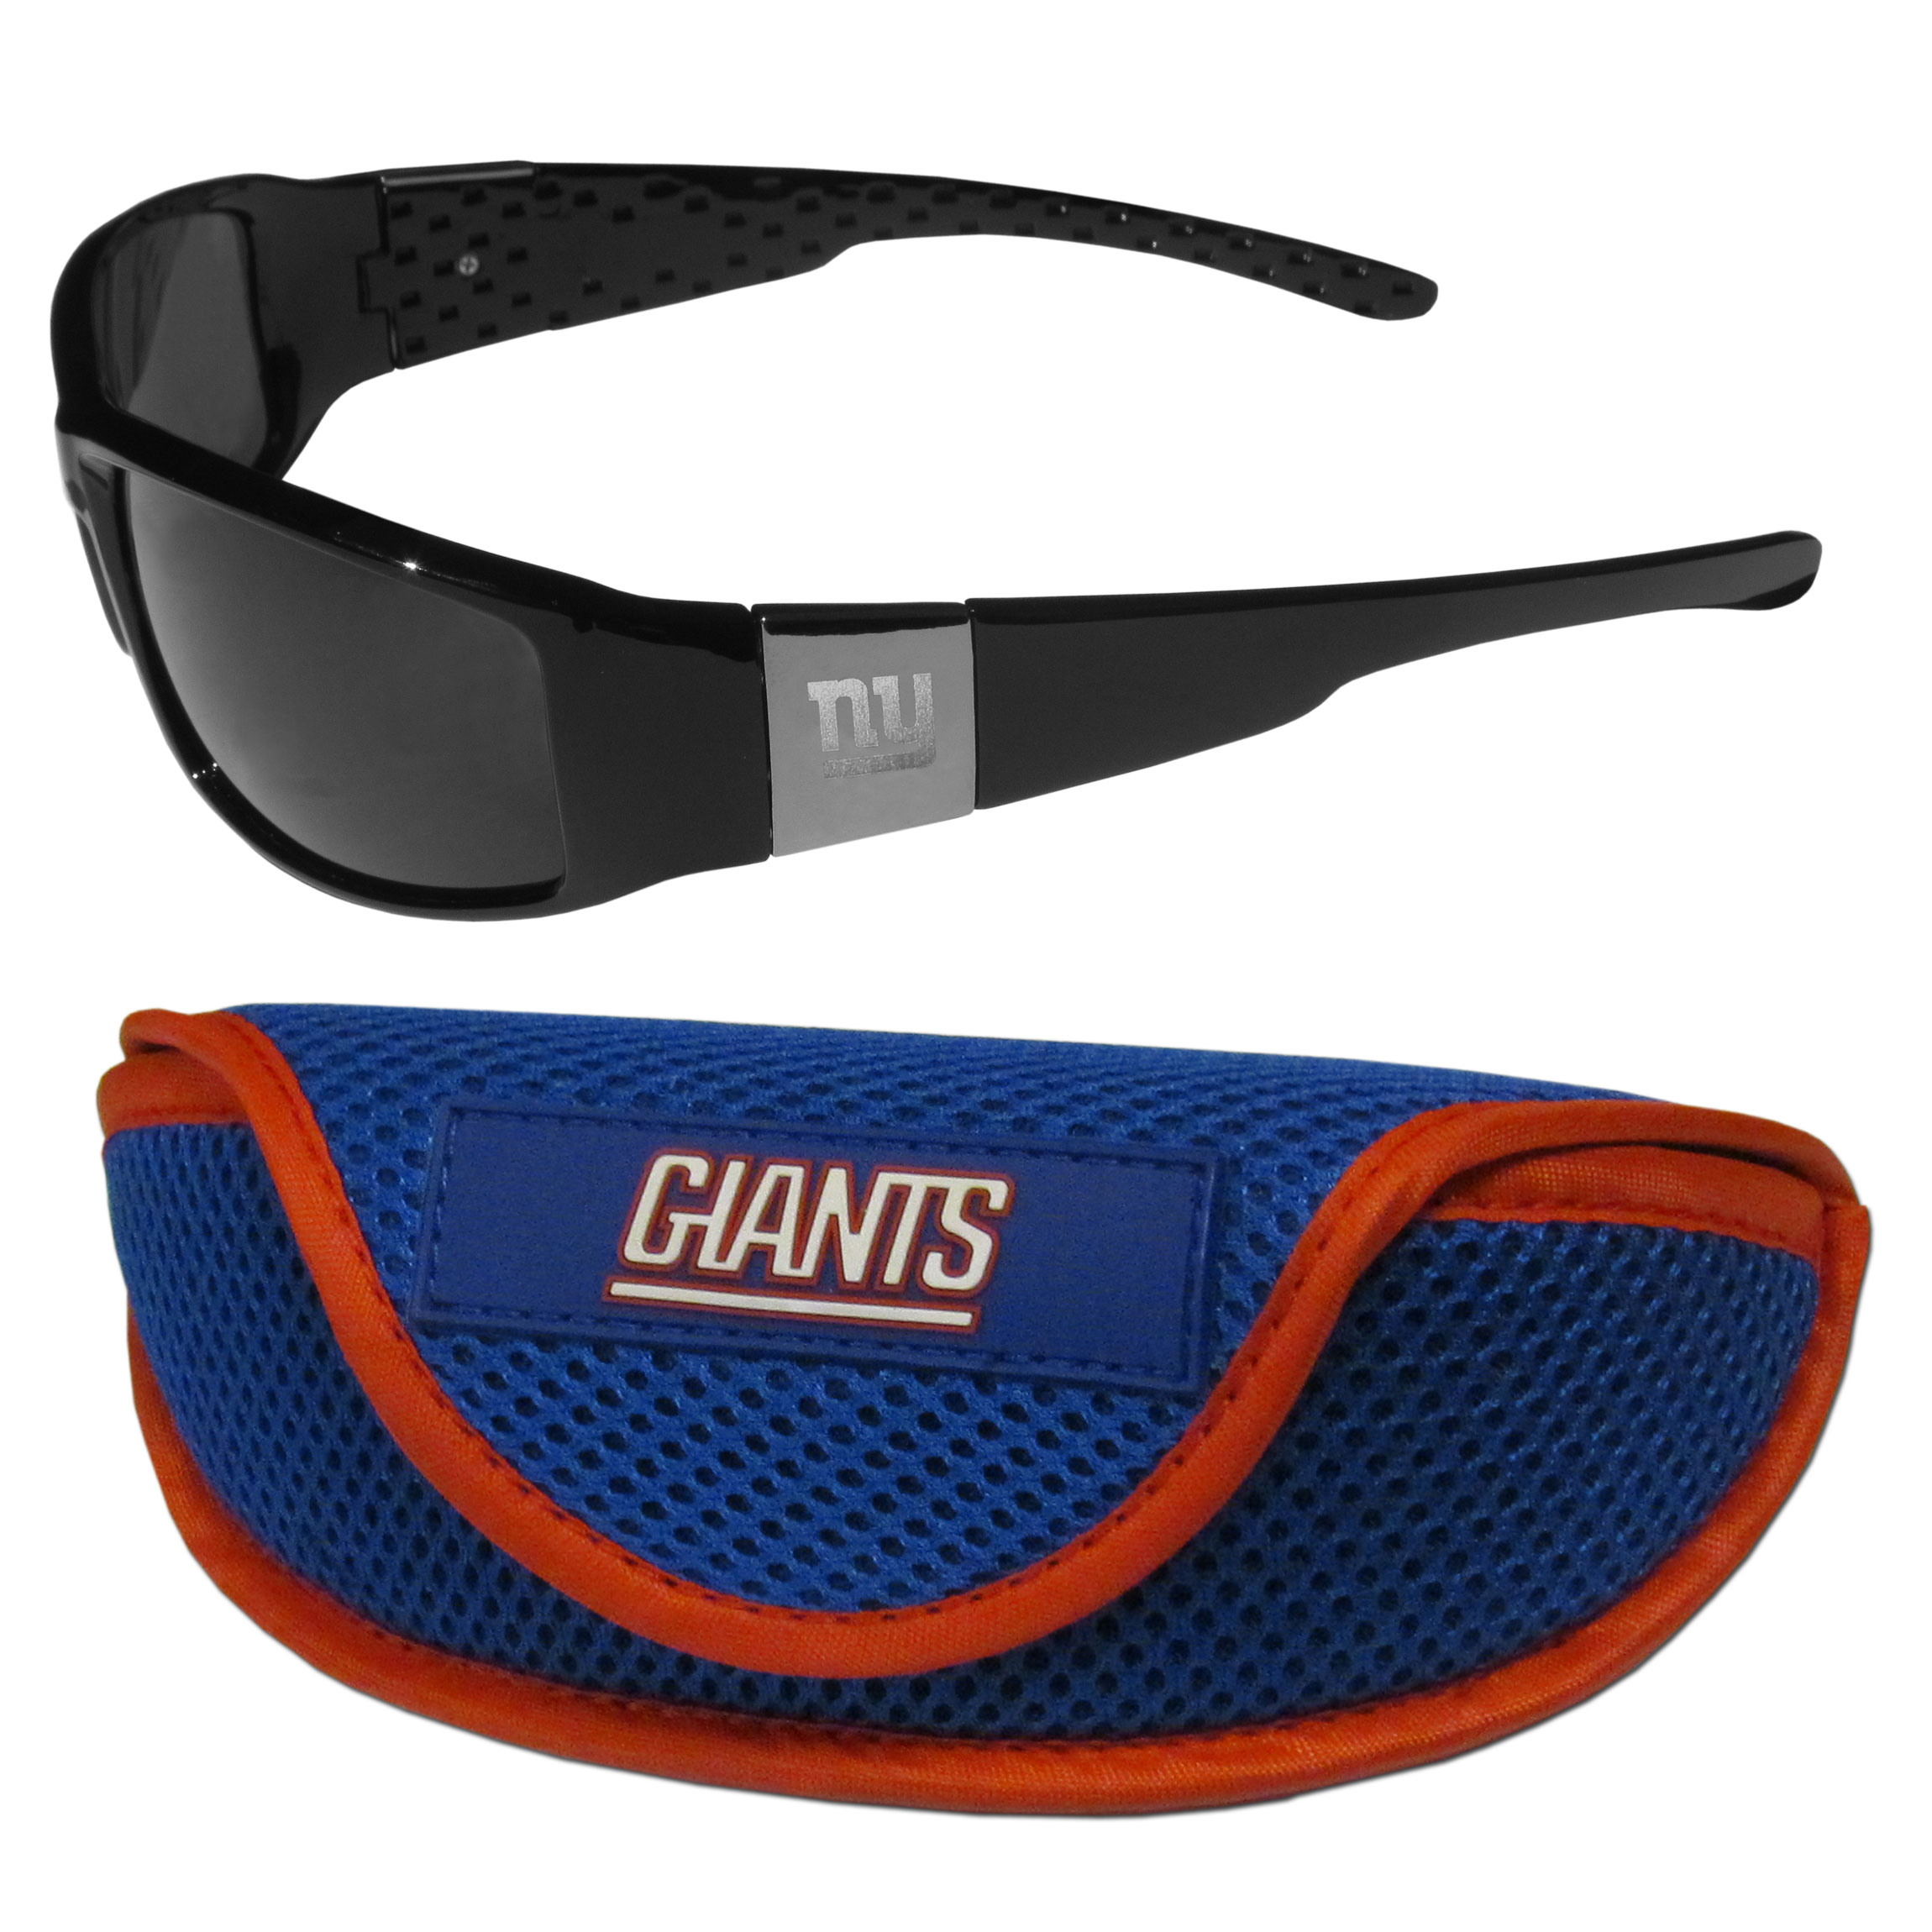 New York Giants Chrome Wrap Sunglasses and Sports Case - Our sleek and stylish New York Giants chrome wrap sunglasses and our sporty mesh case. The sunglasses feature etched team logos on each arm and 100% UVA/UVB protection. The case features a large and colorful team emblem.